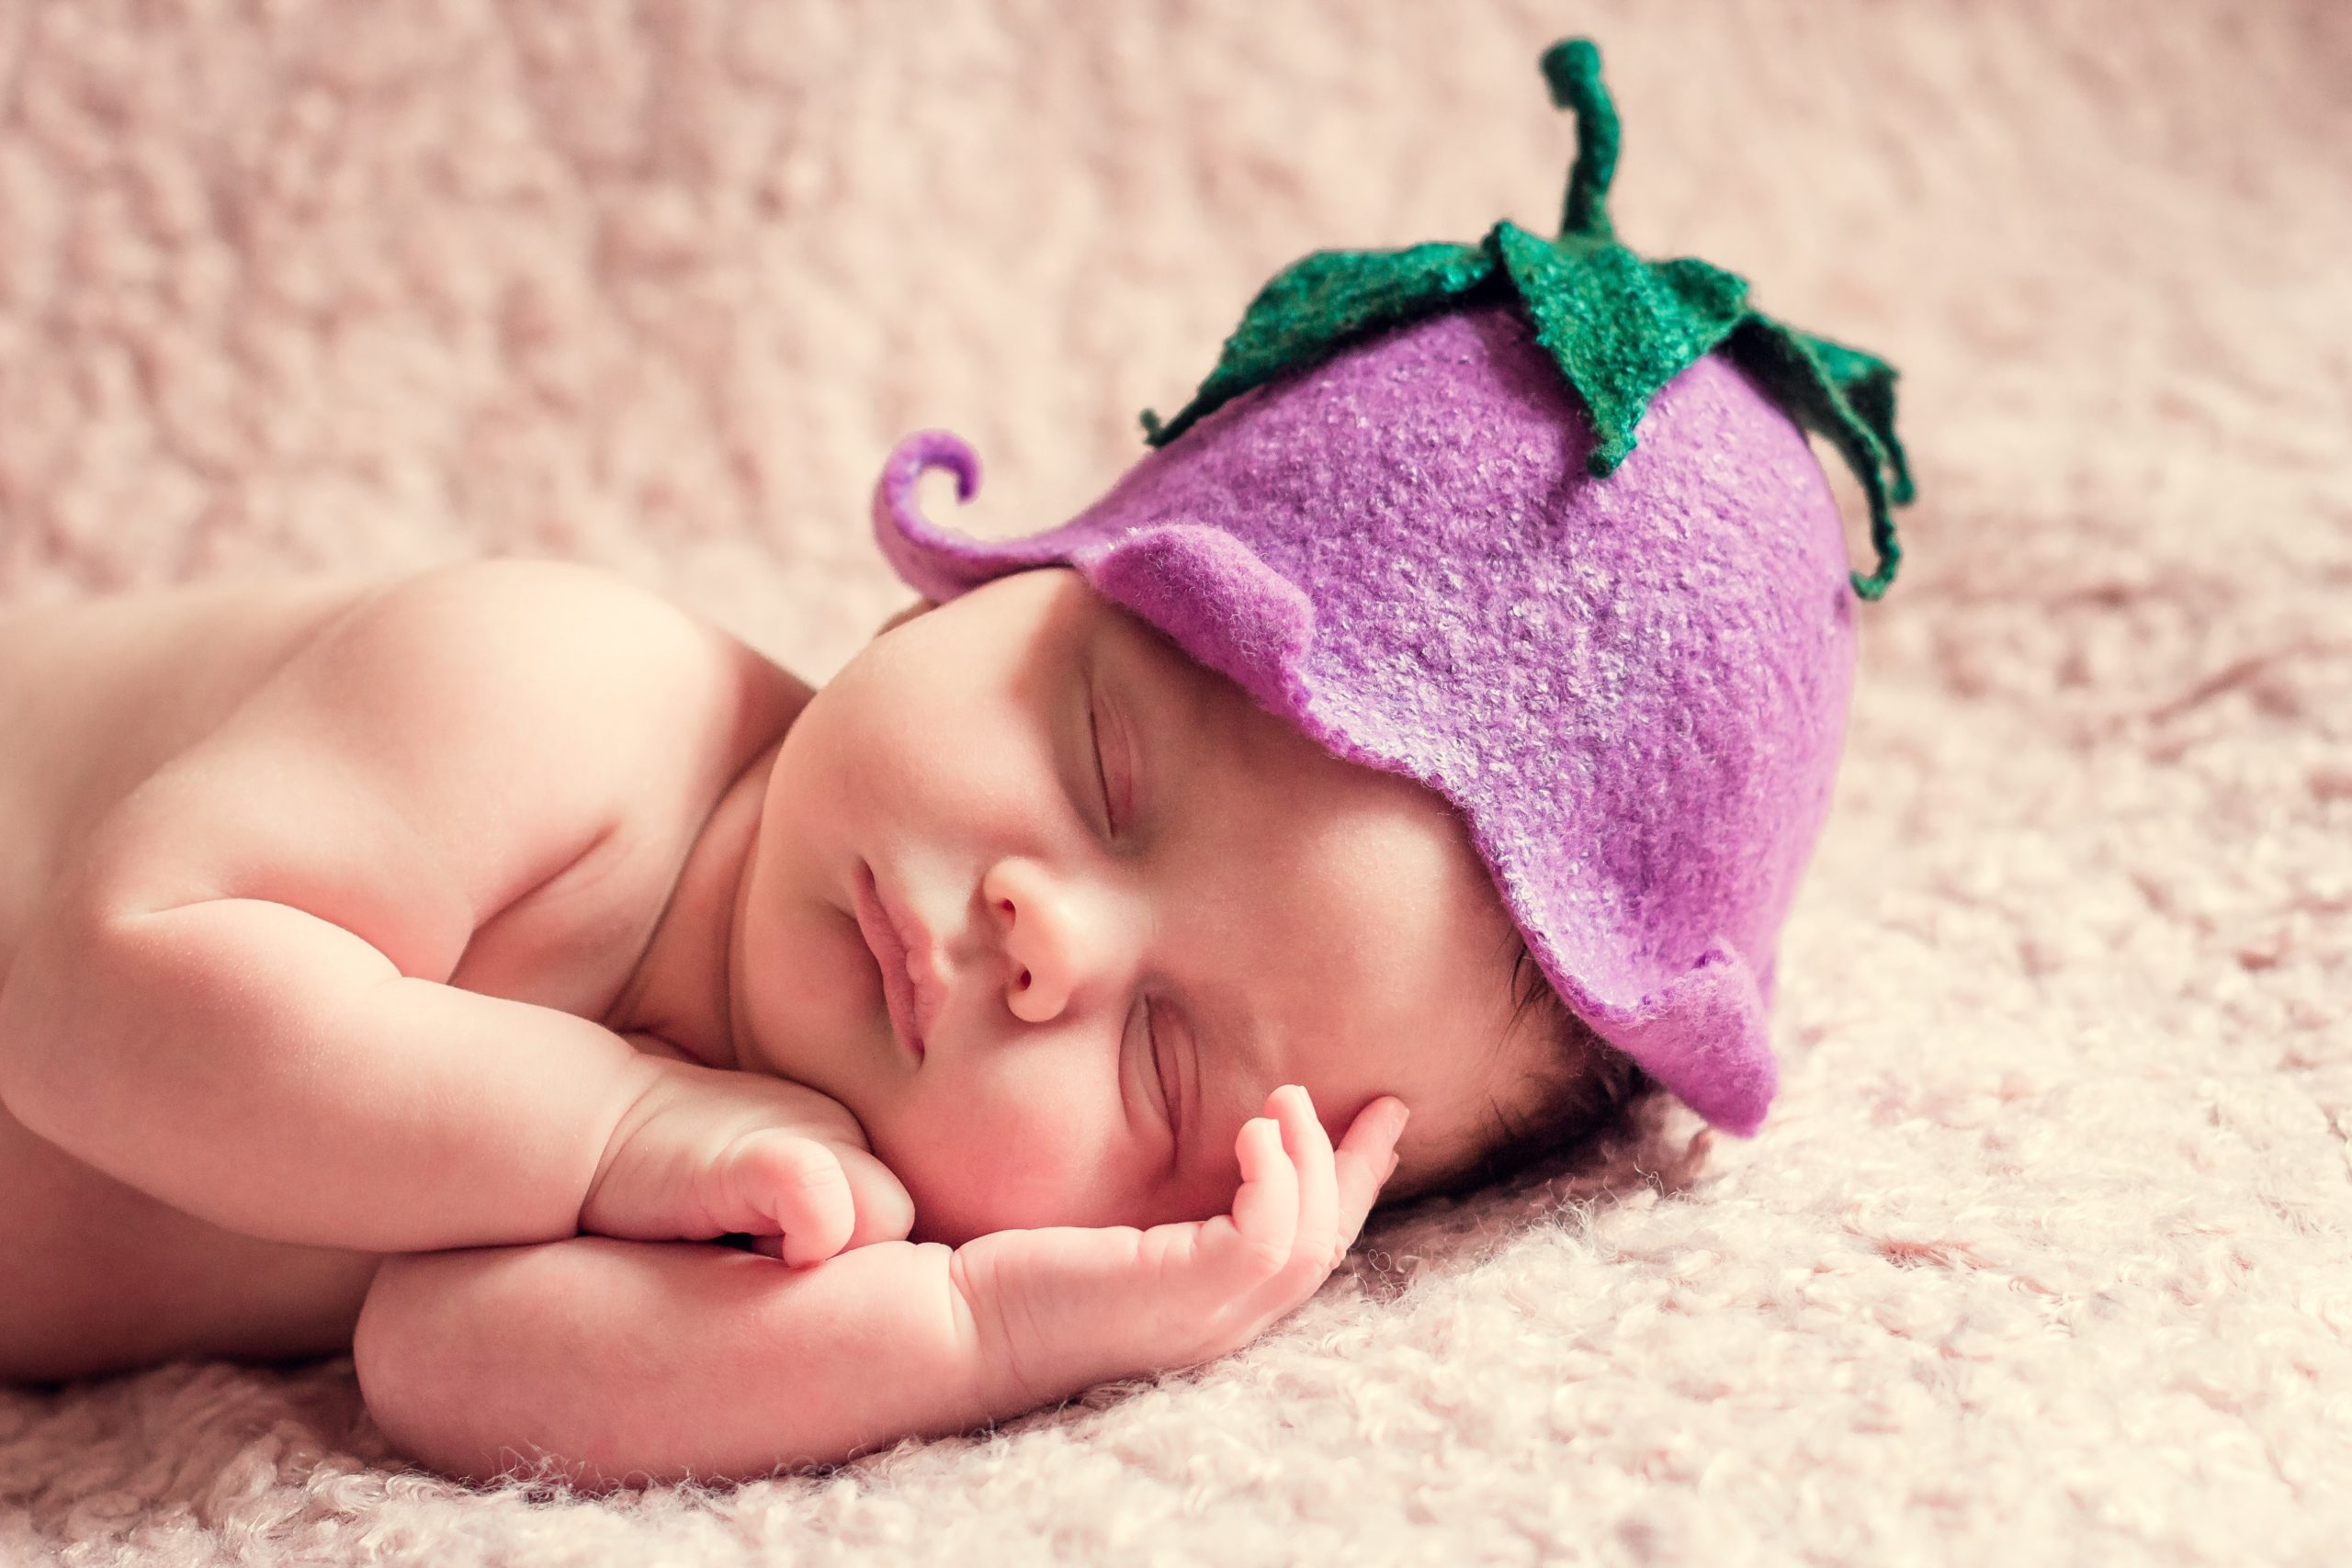 Cute baby asleep with funny hat on